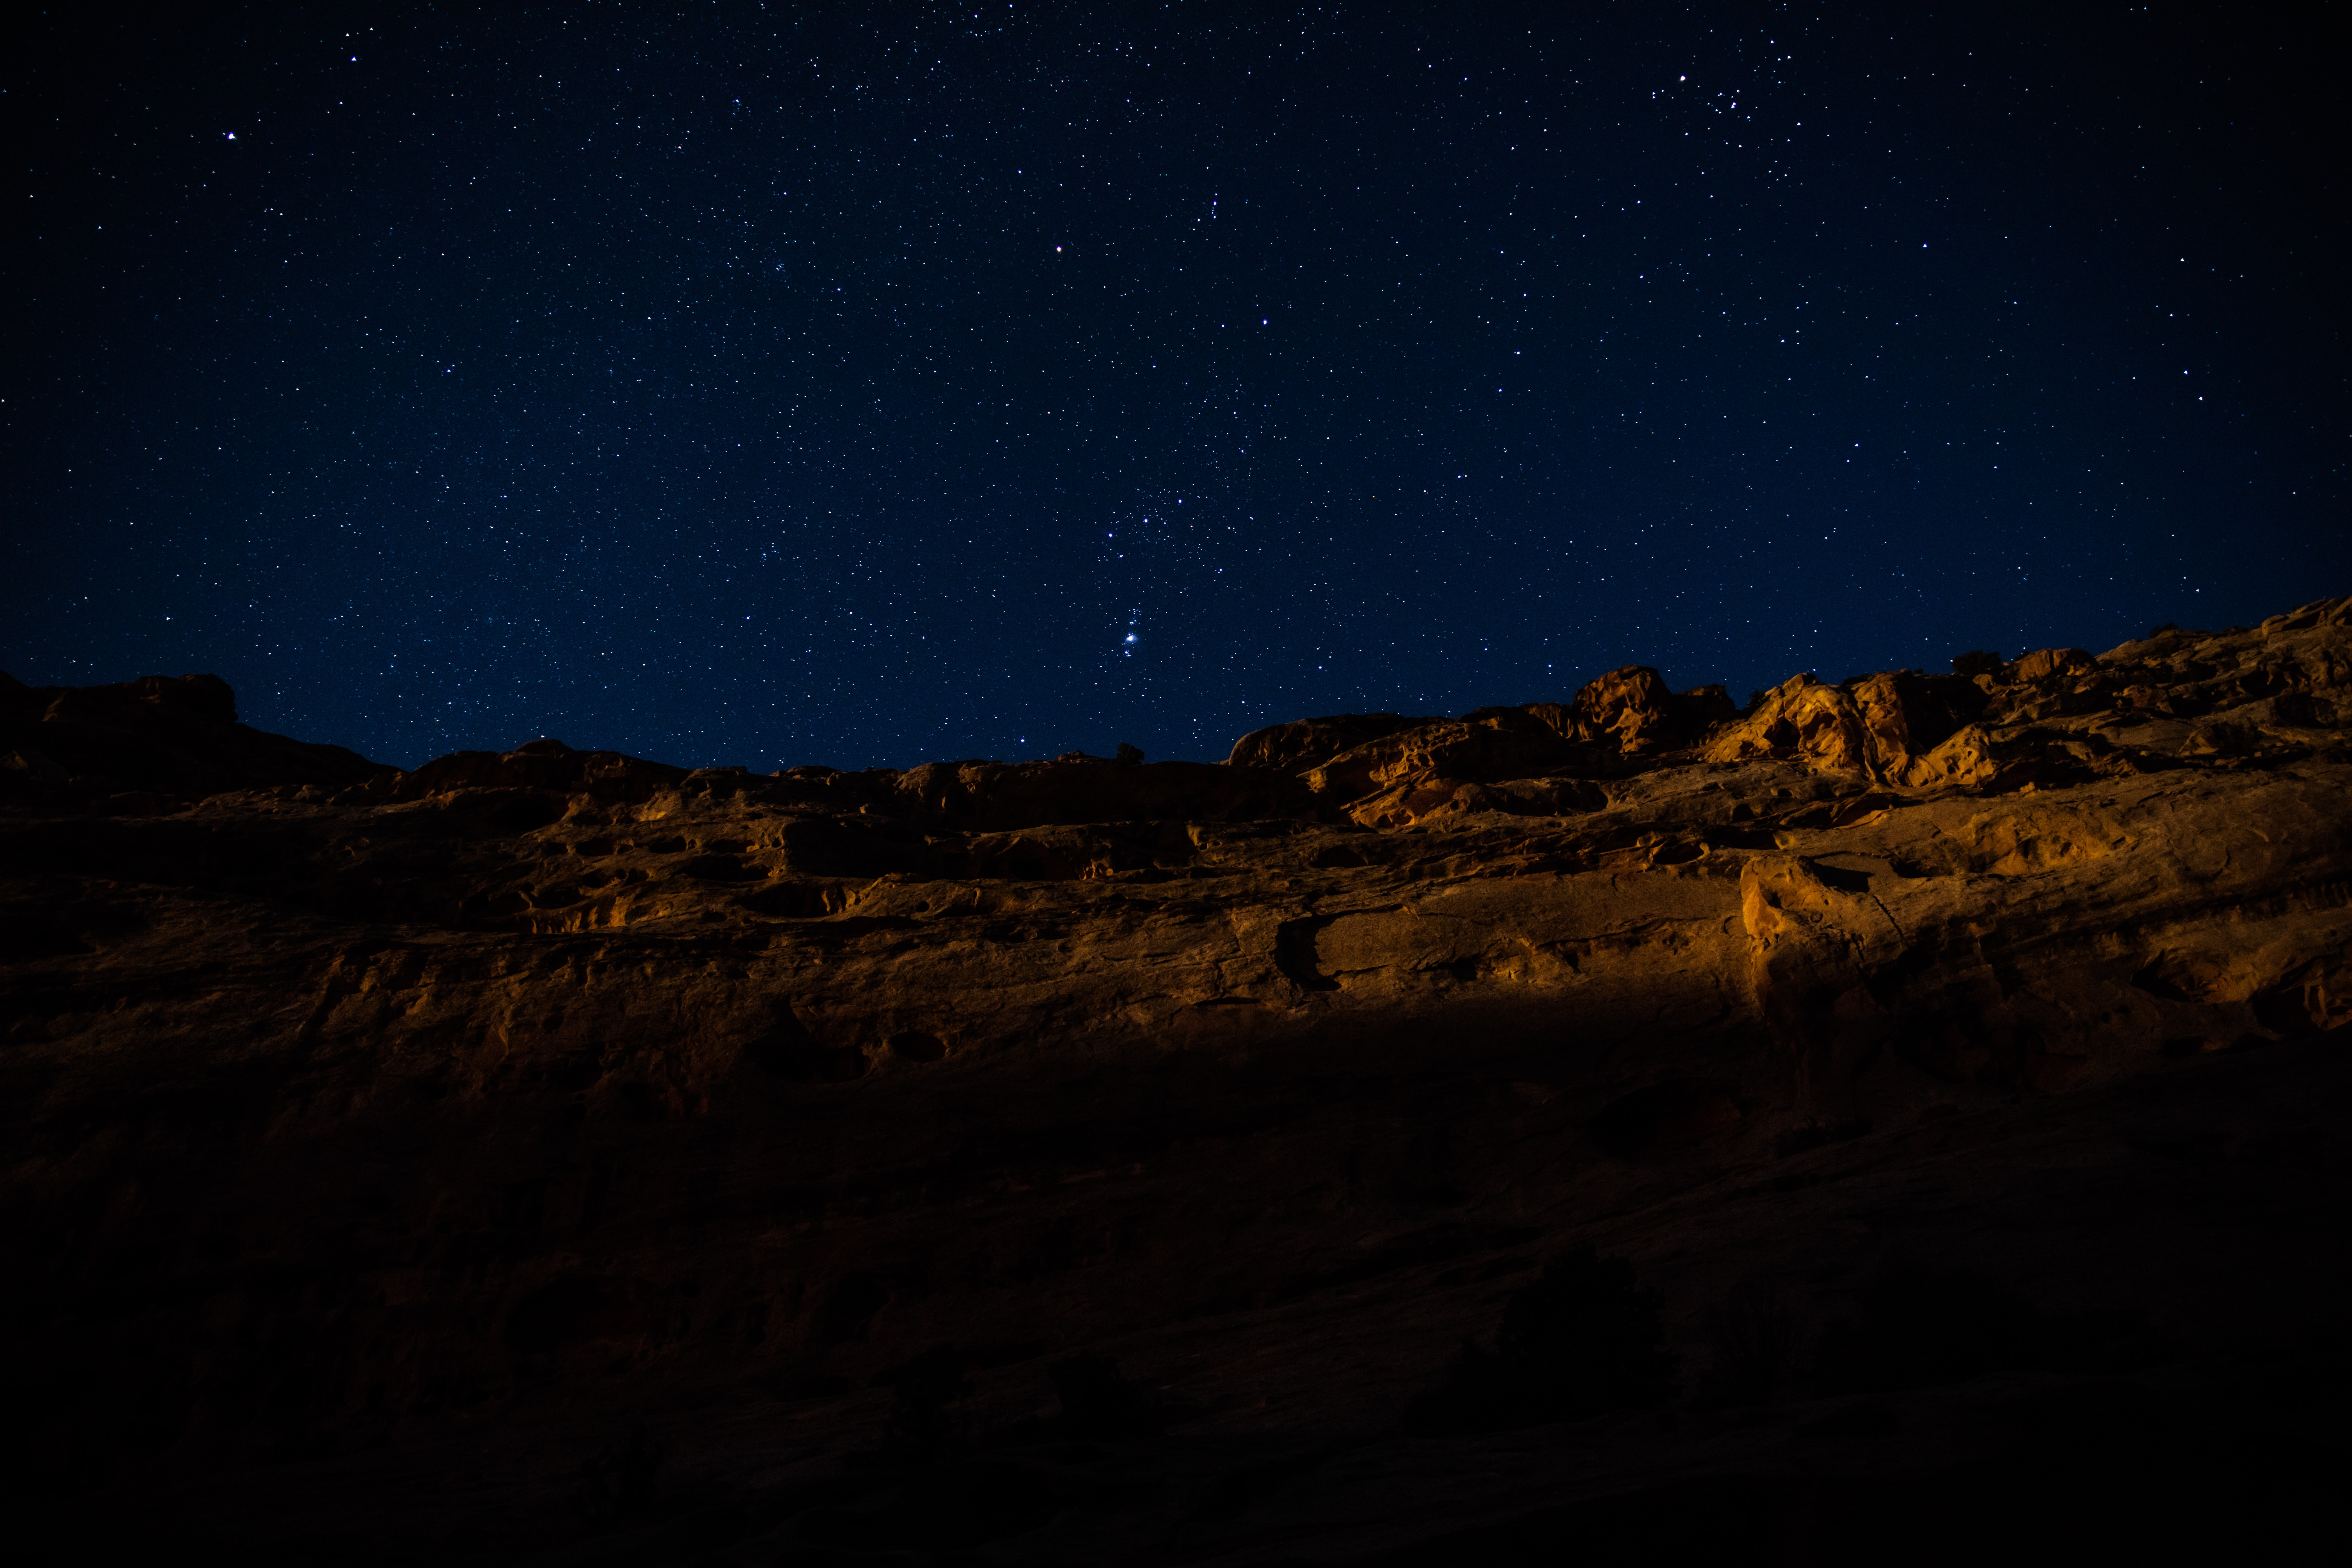 landscape photography of hill during nighttime